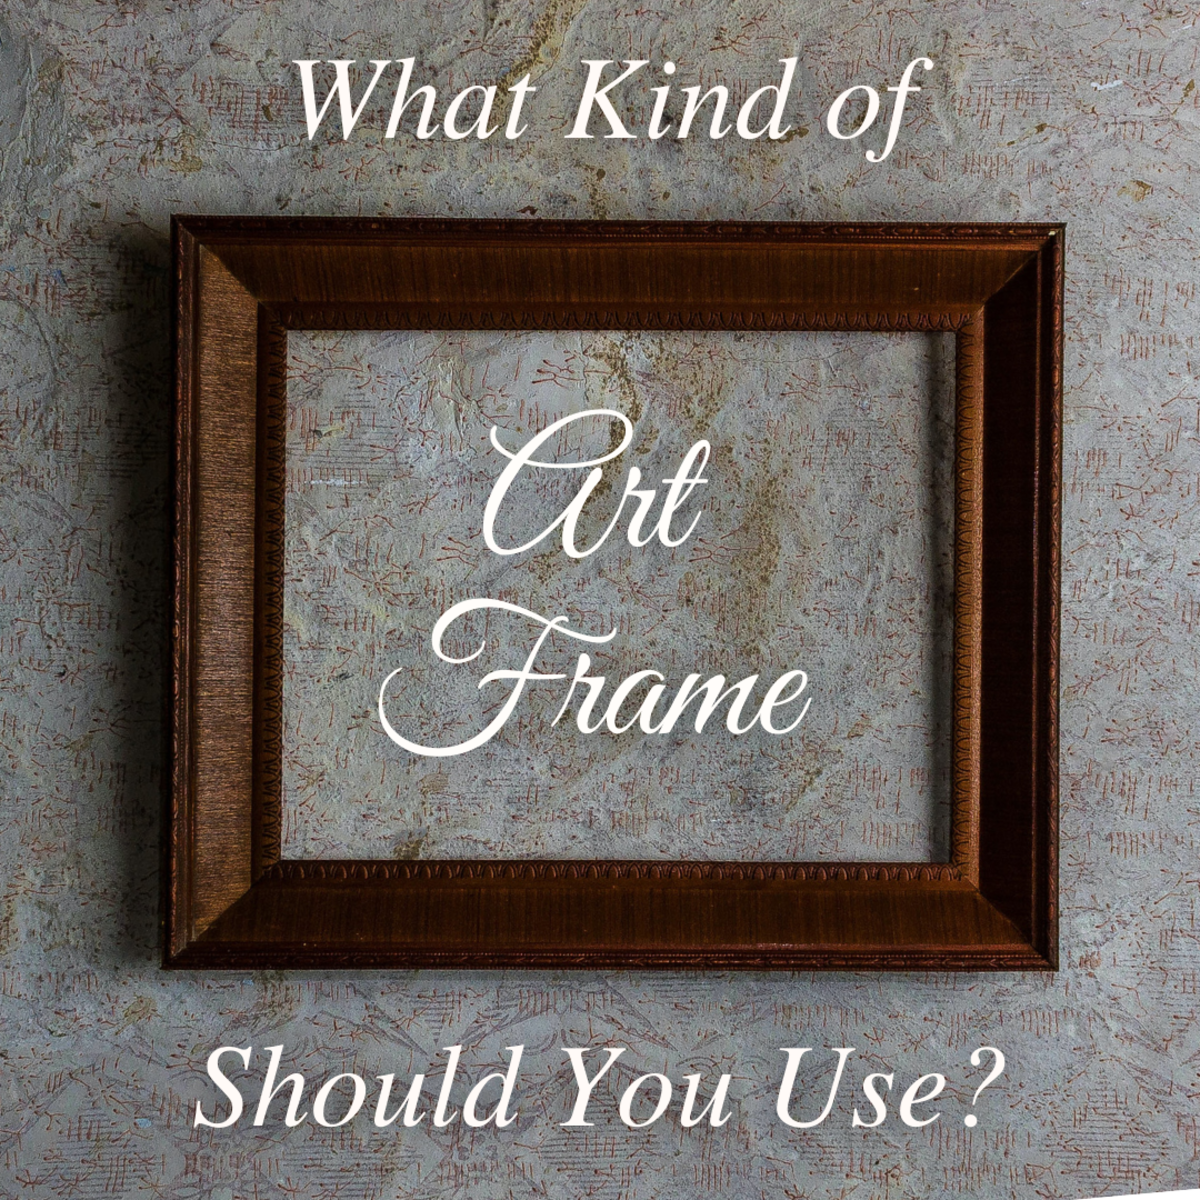 Take the guesswork out of selecting frames with these easy tips!